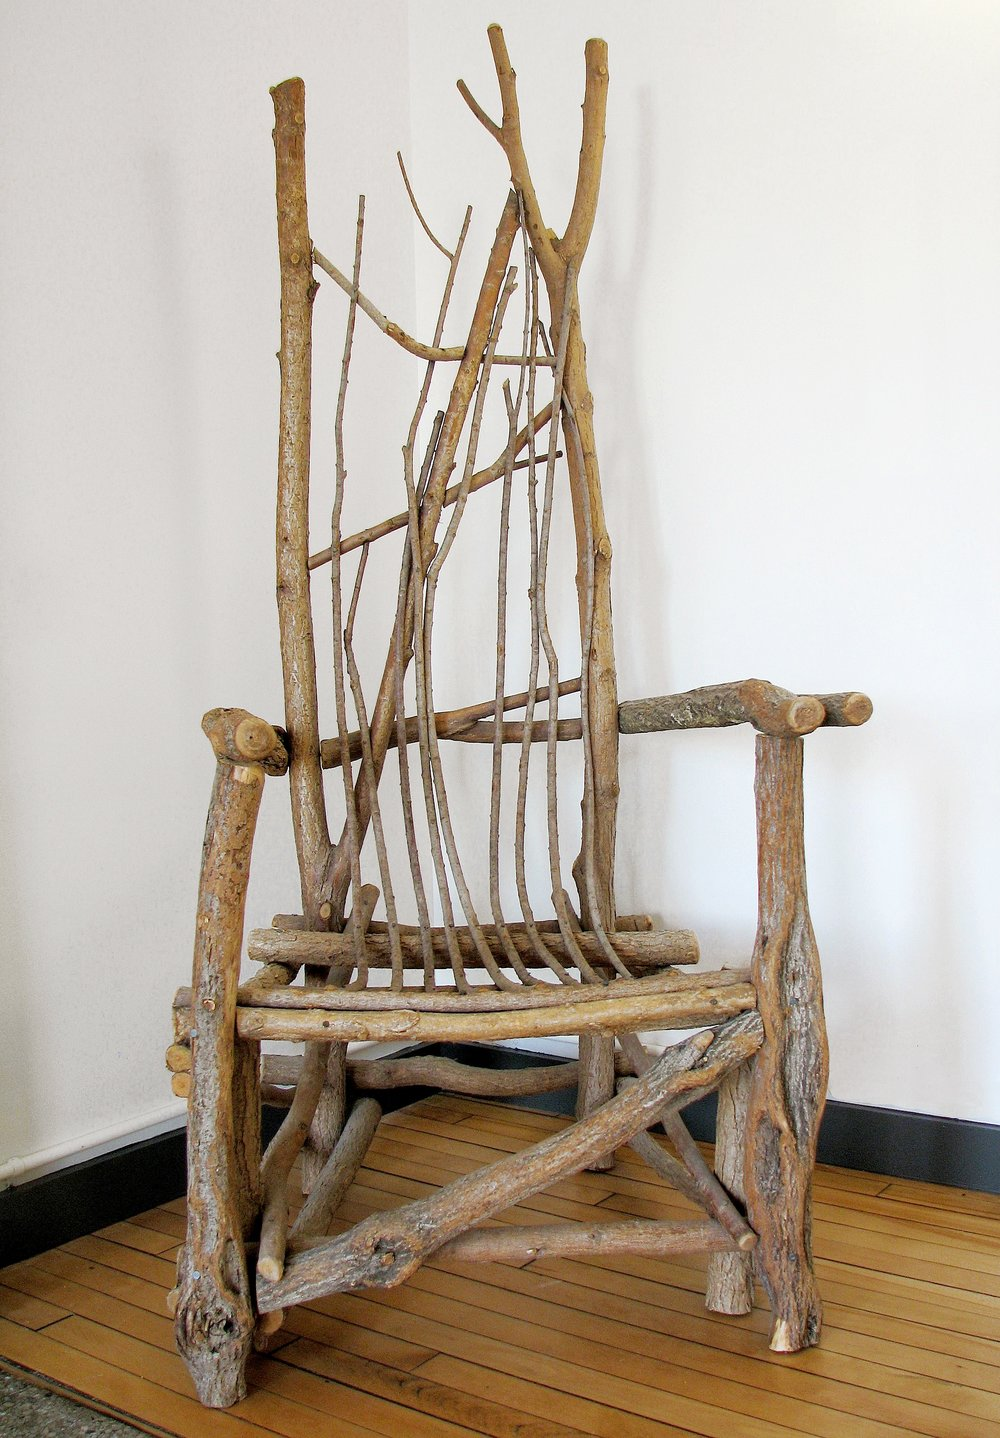 Twig chair.  Made at the Outsiders' Show of the Adirondack Furniture show with teacher, Bim Willow—Media: willow branches